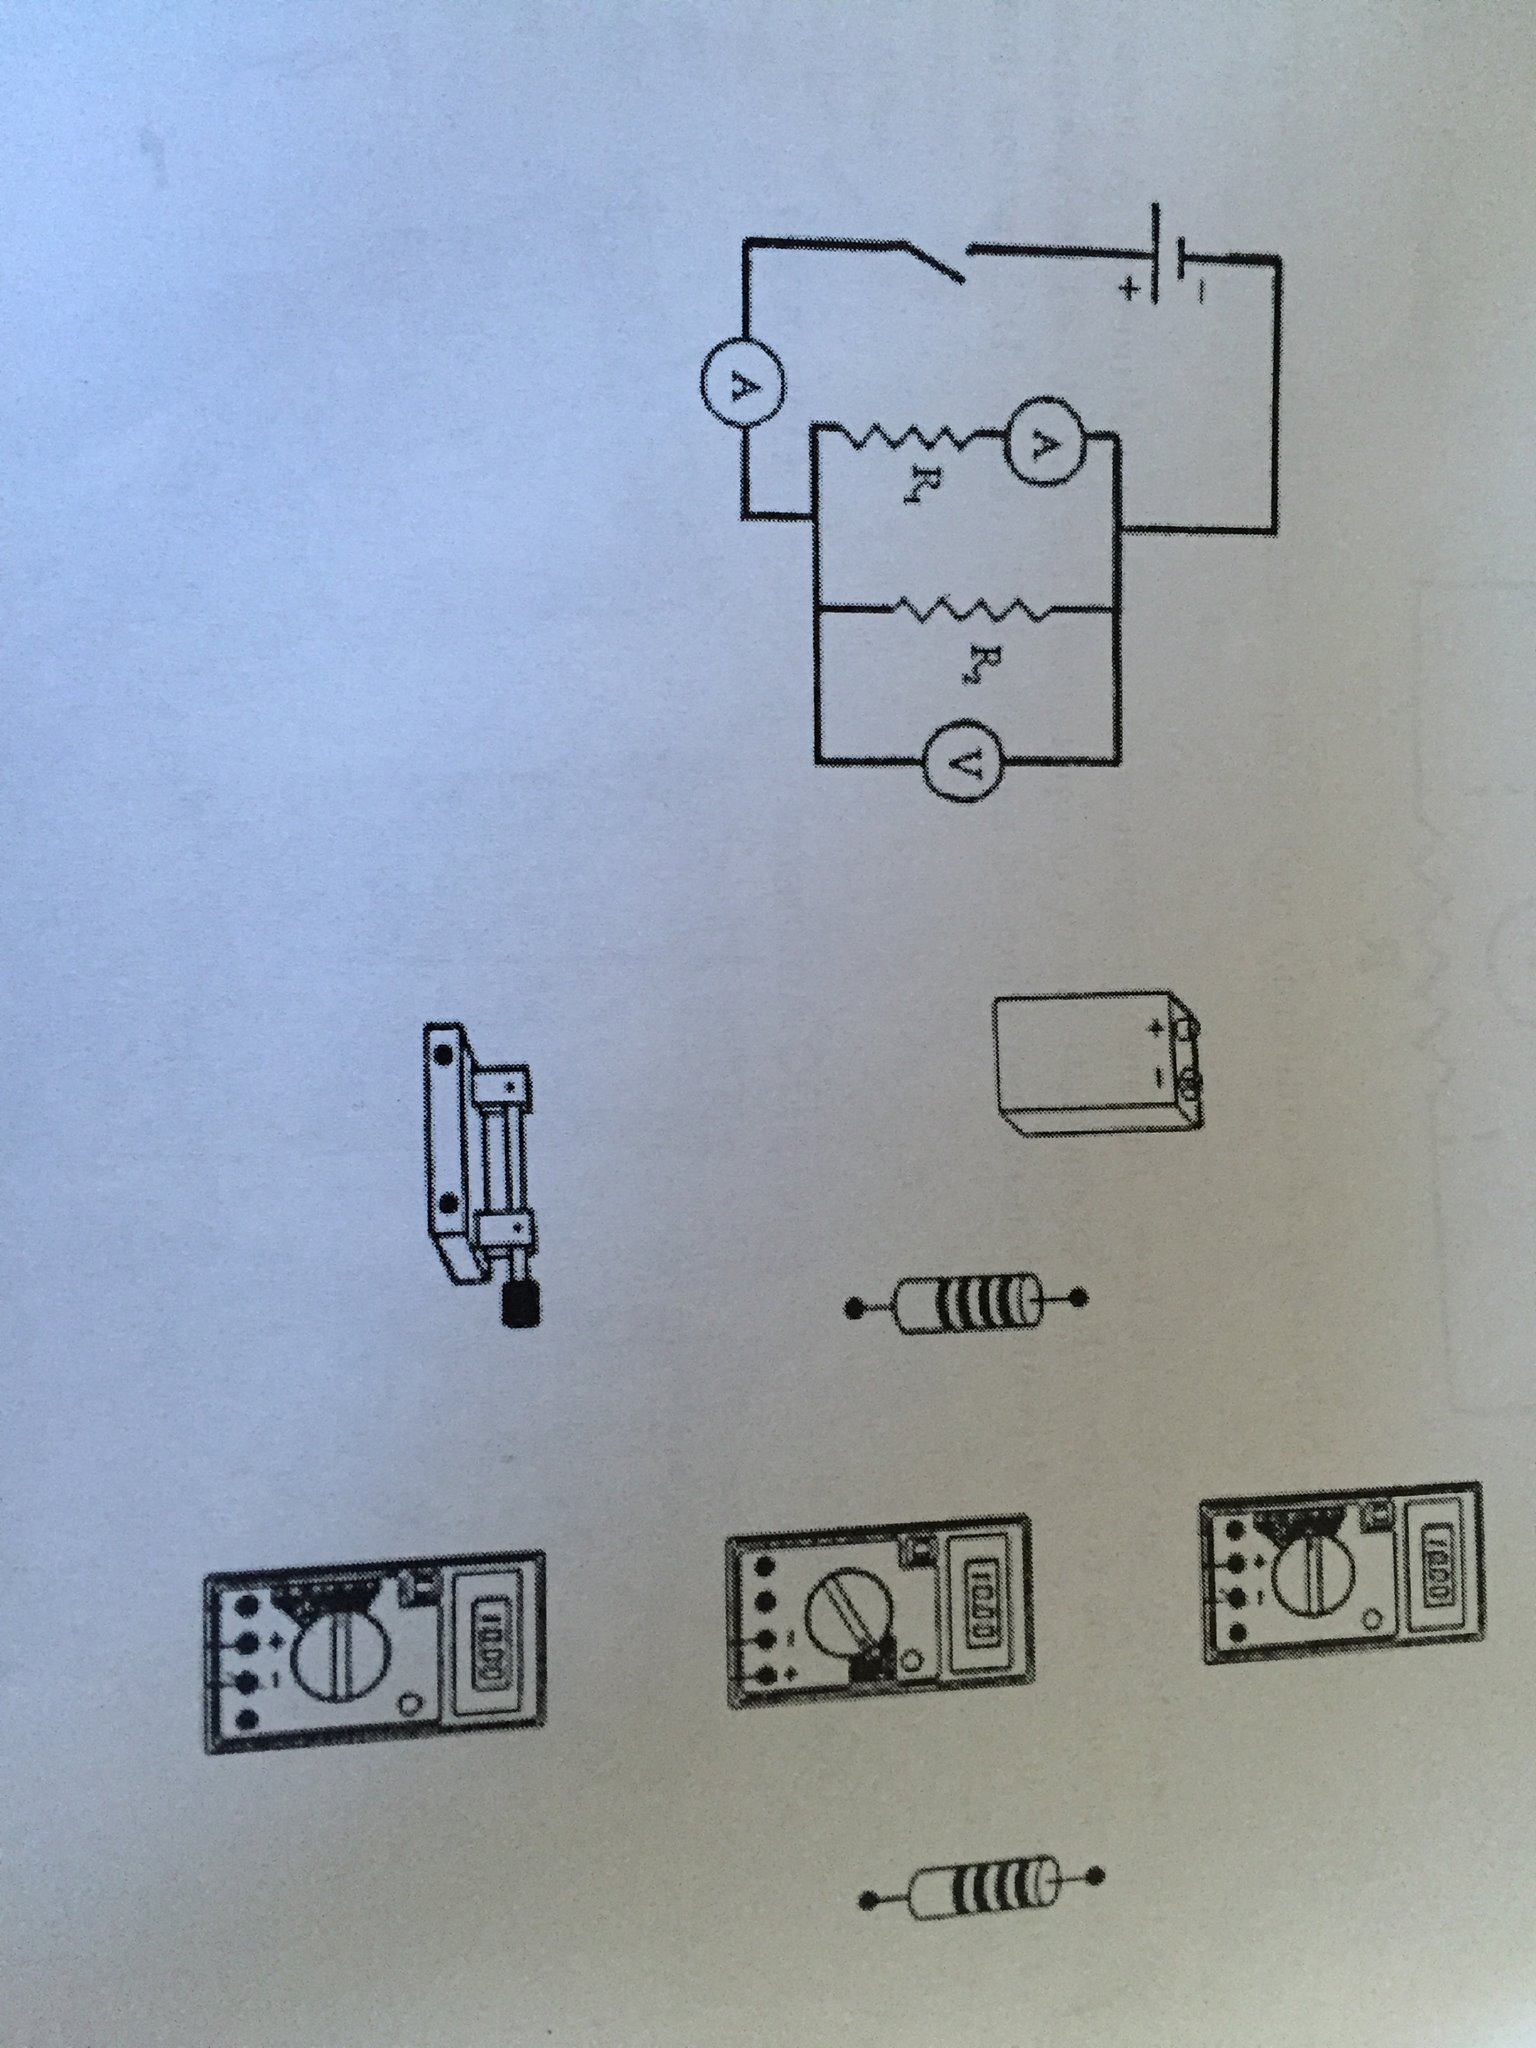 Solved: An Electrical Schematic Diagram Of DC Ciruit With ...